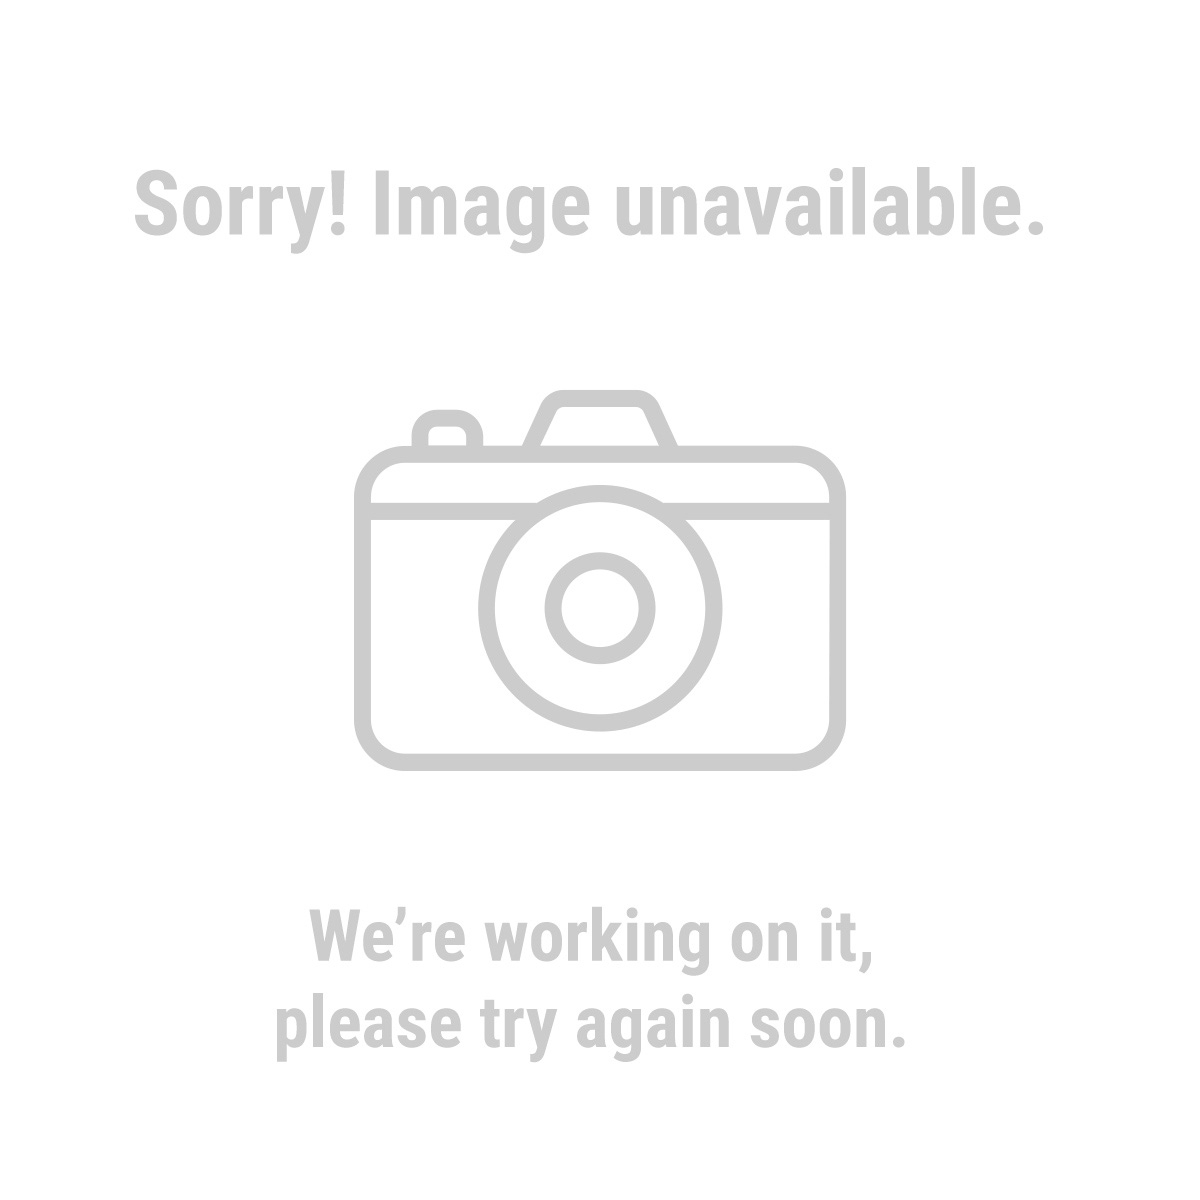 Pittsburgh® 61877 4-in-1 Aluminum Rafter Angle Square